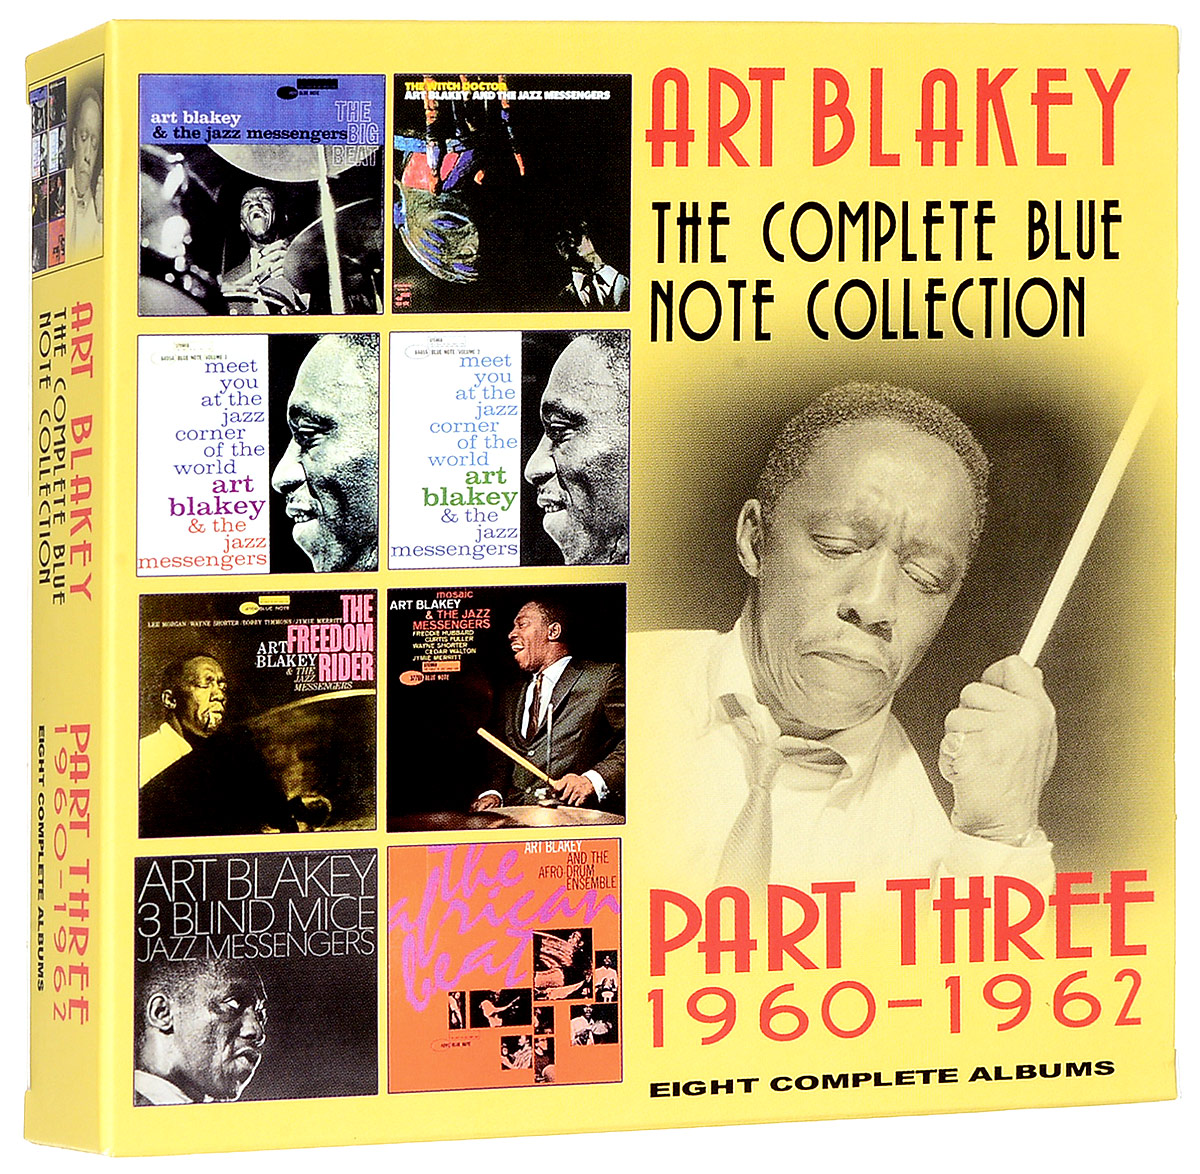 Арт Блэйки Art Blakey. The Complete Blue Note Collection 1960 - 1962 (4 CD) cd billie holiday the centennial collection